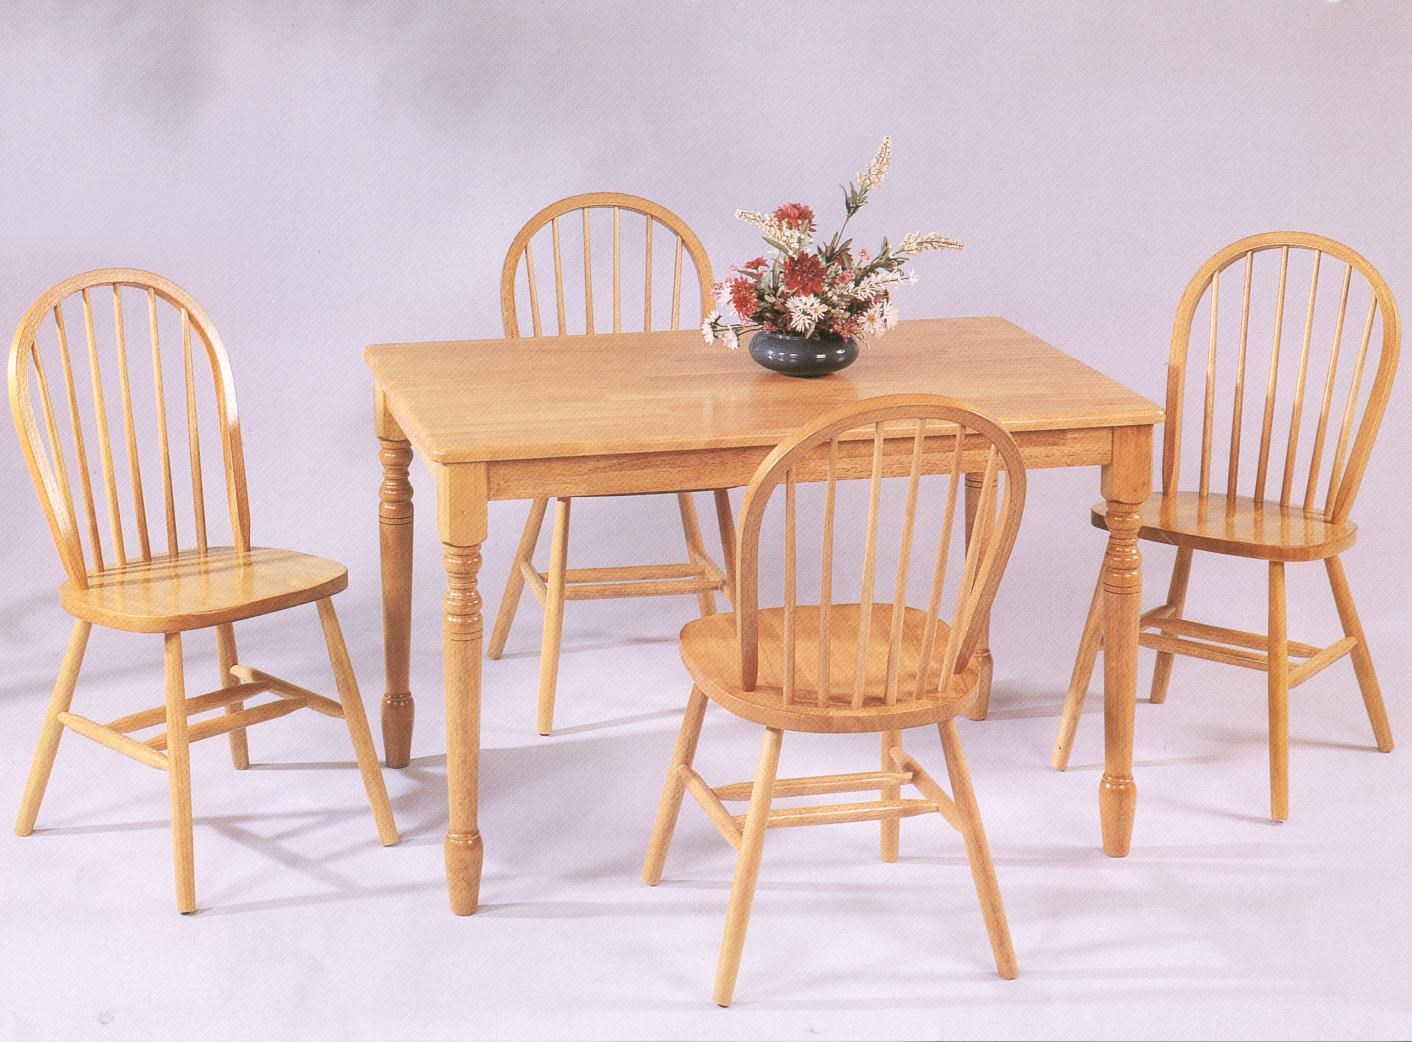 Amesbury Chair Farmhouse And Traditional Windsor Rectangular Leg Table W/ 4 Side  Chairs